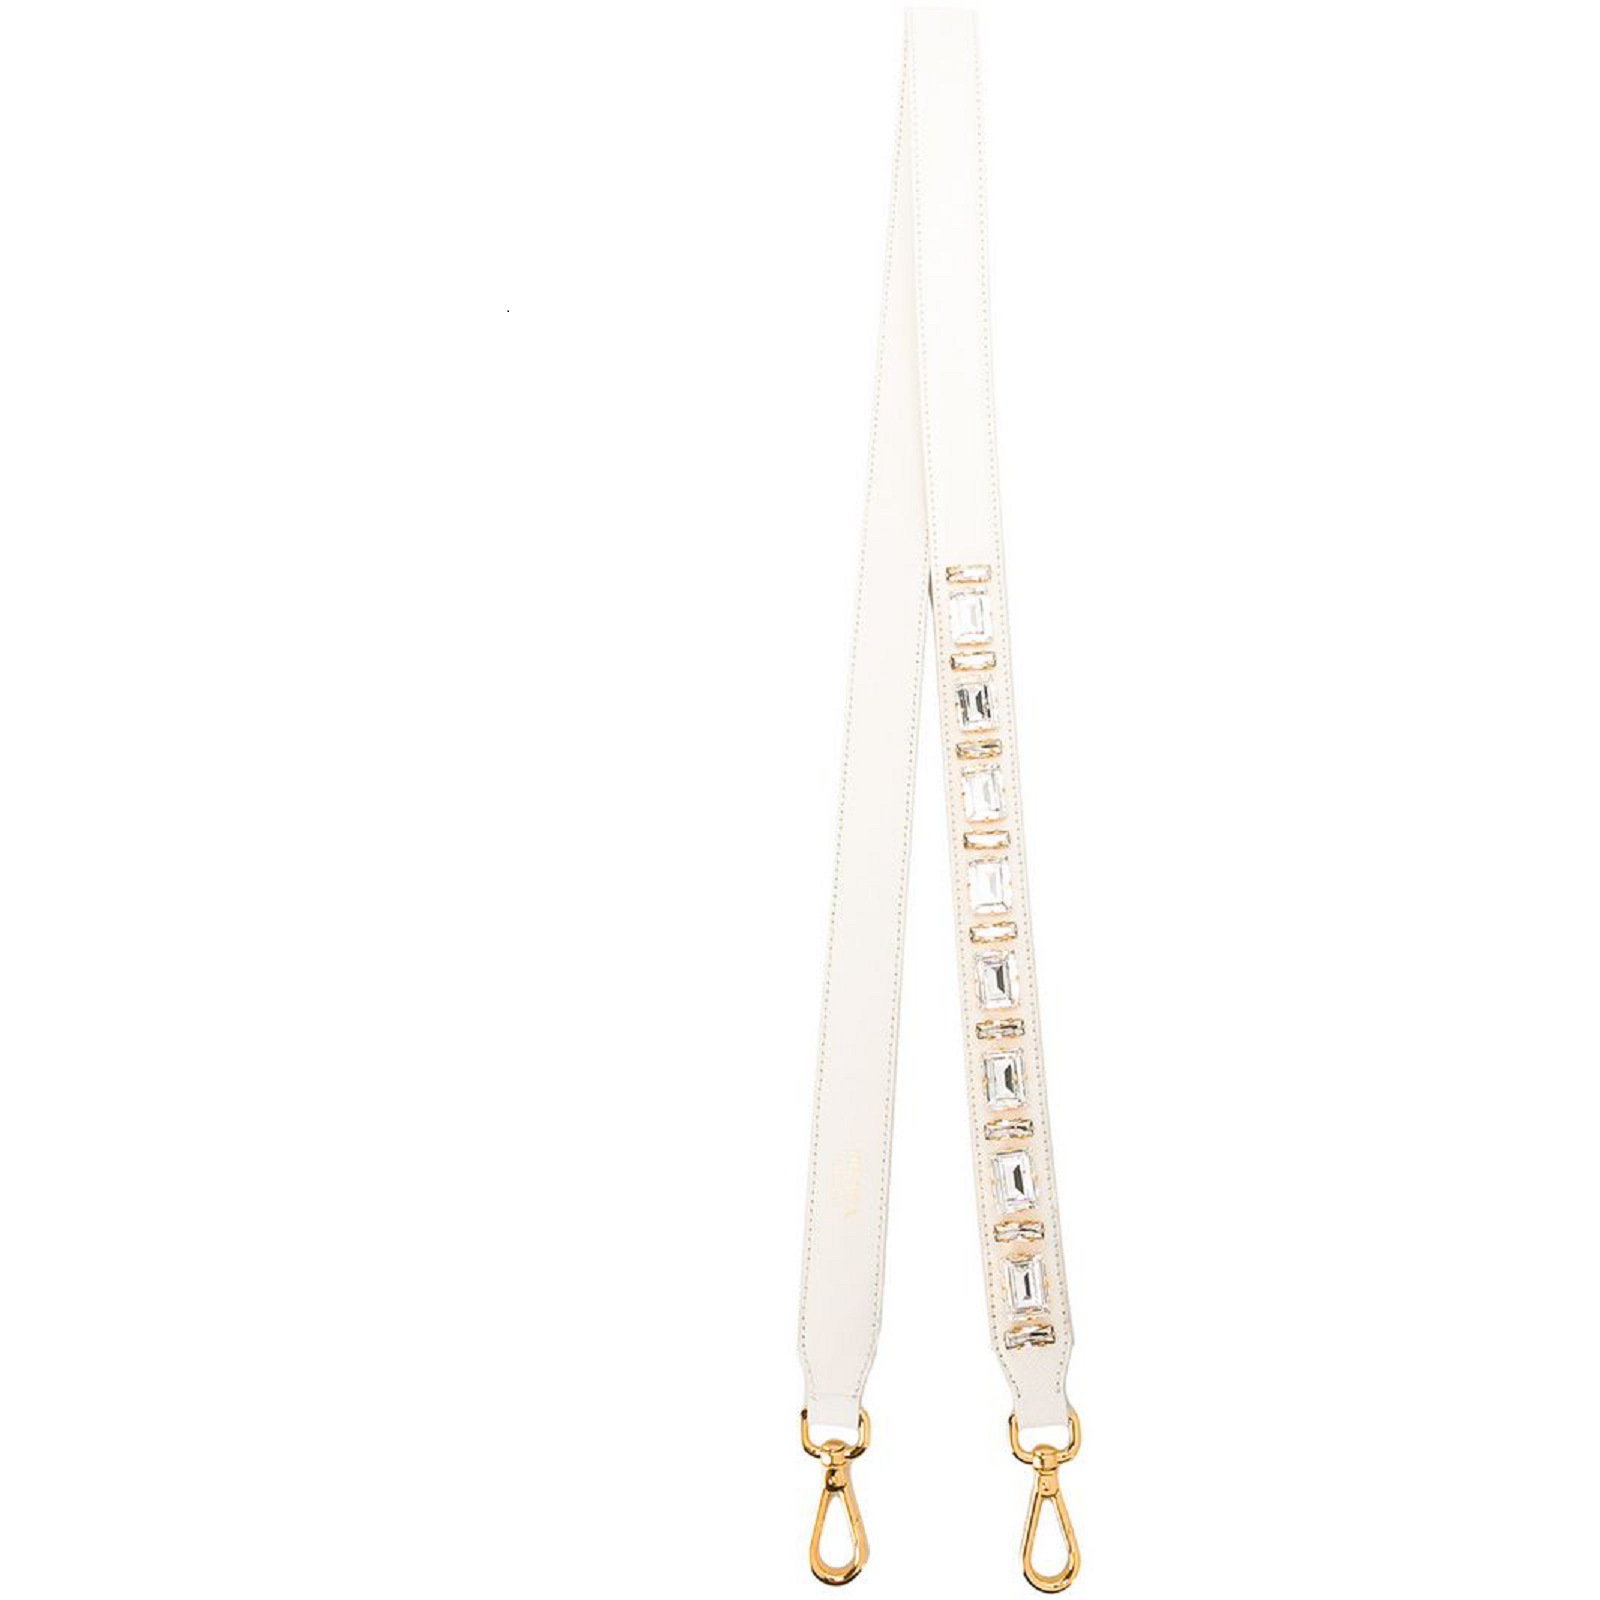 Prada Leather Saffiano Leather Crystal Women's White Strap 1TY006